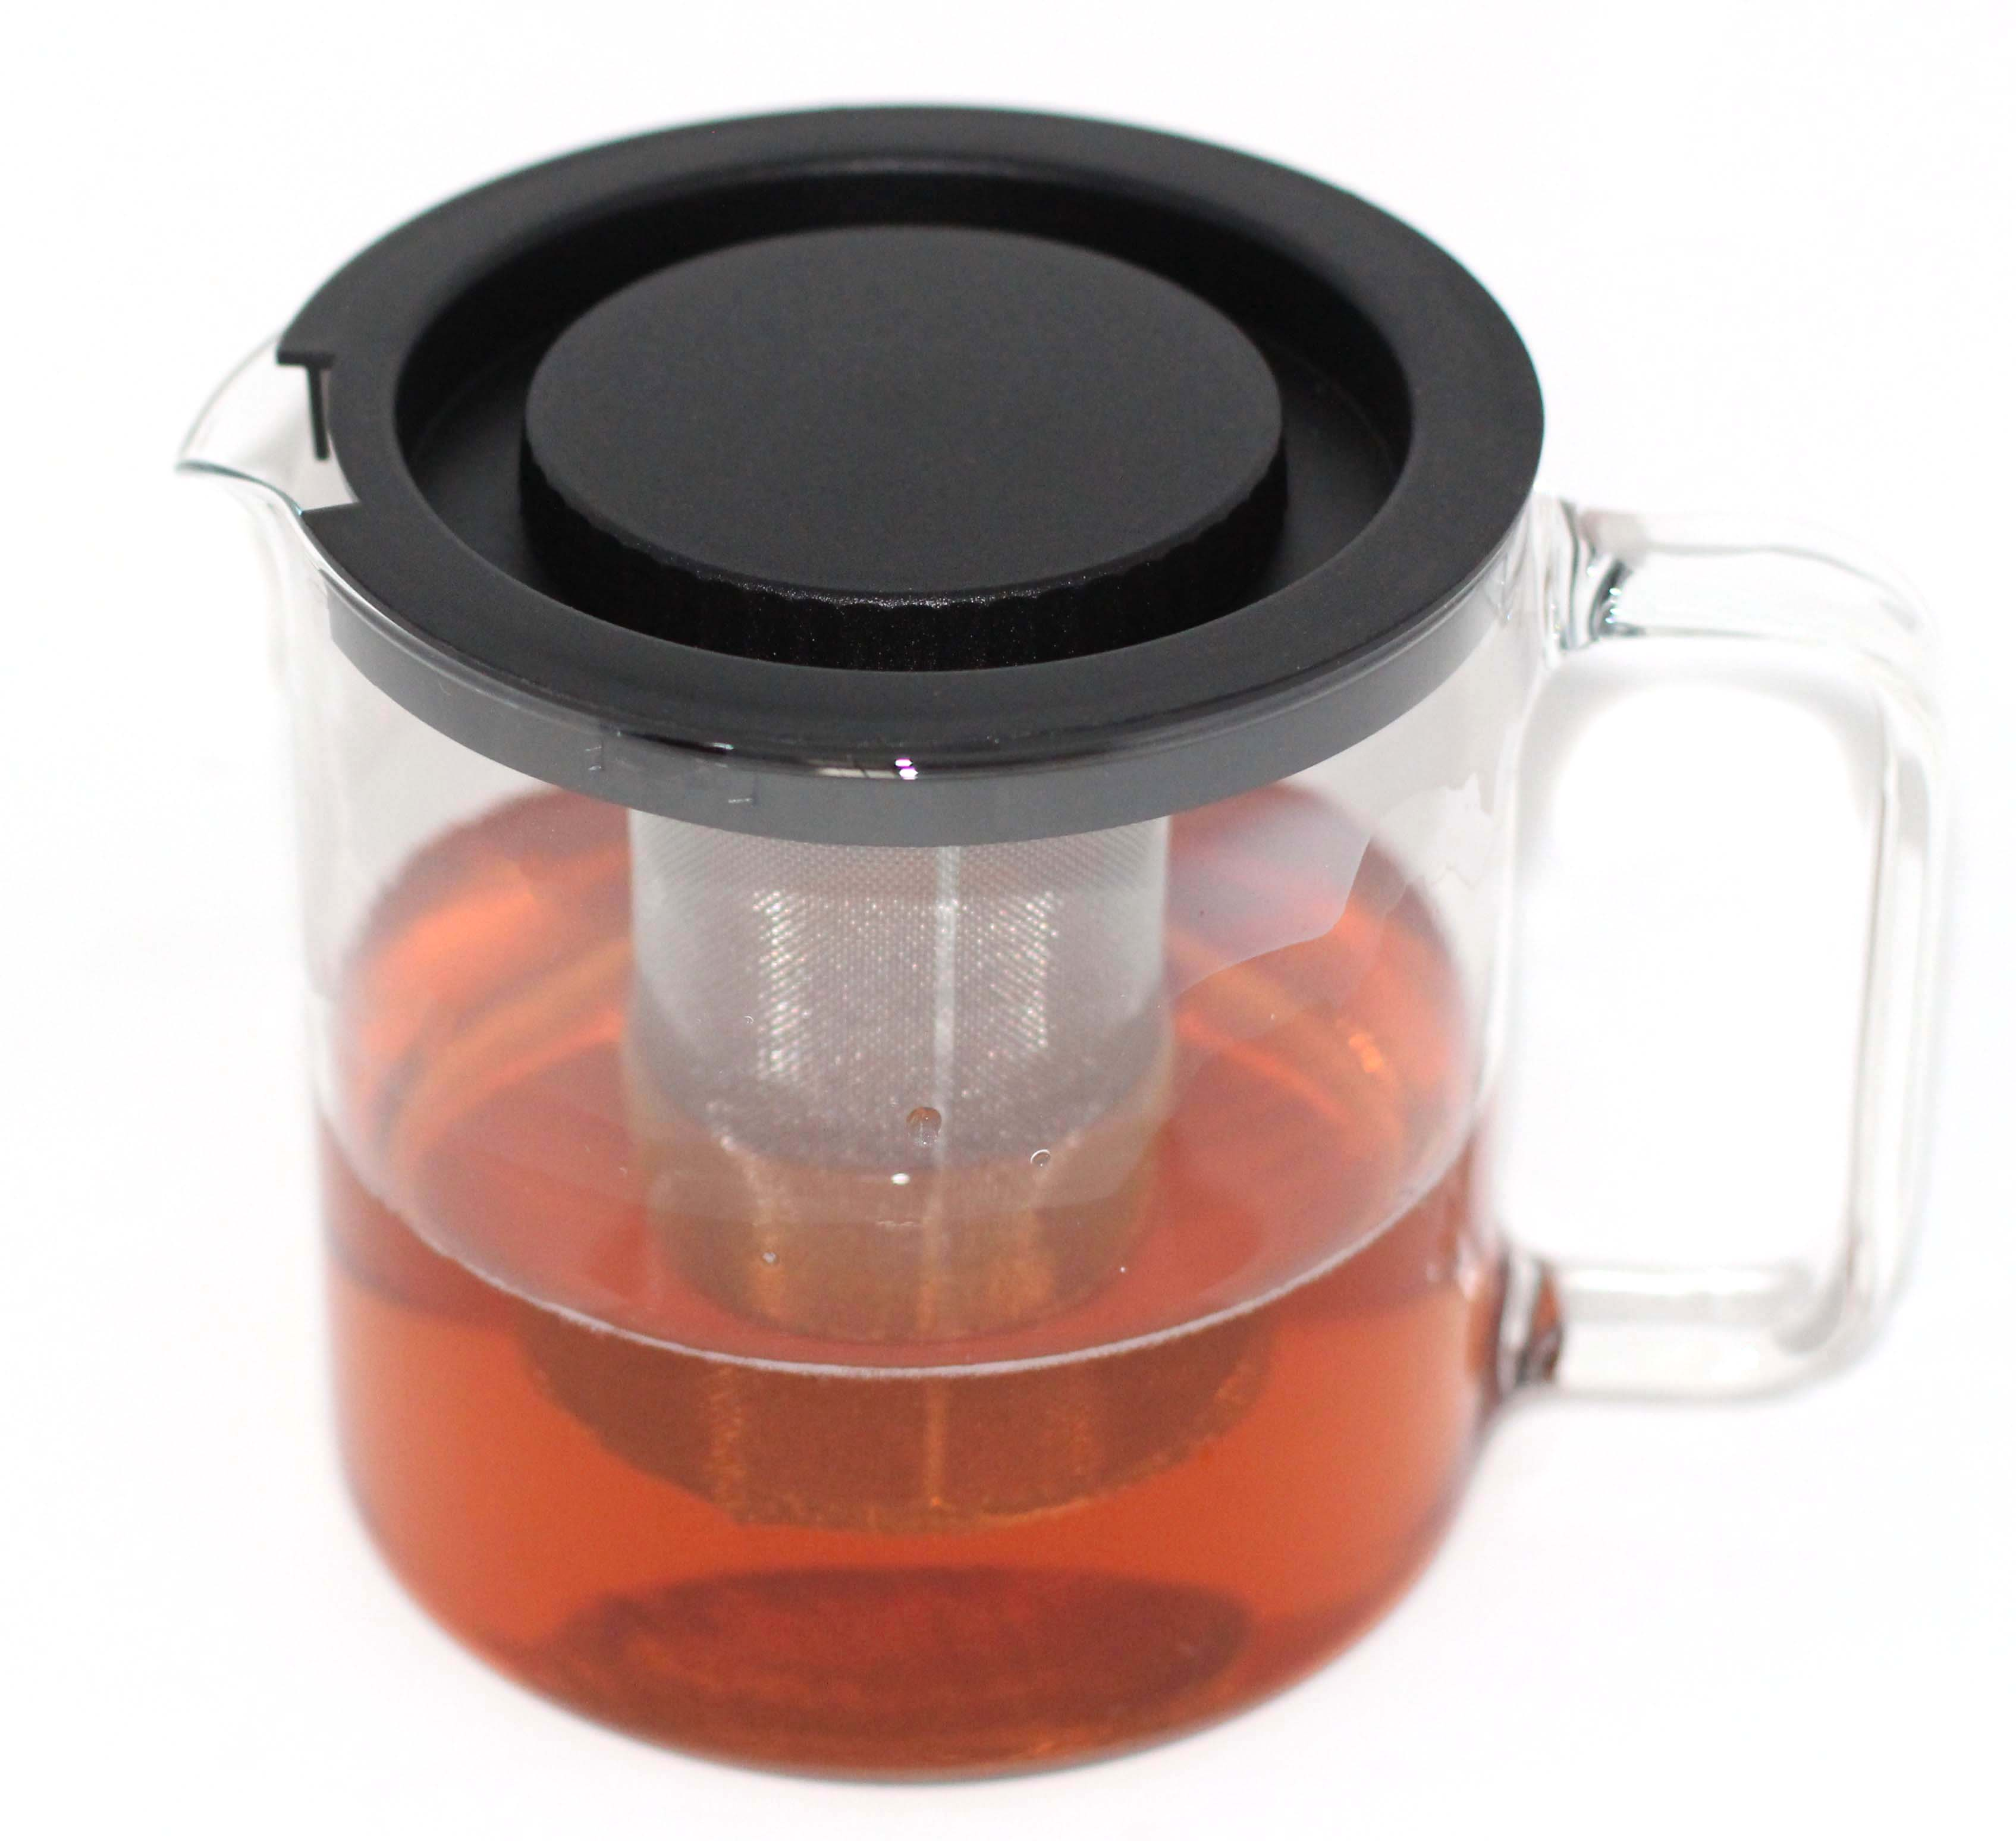 Simax Glassware 1 Quart Teapot with Metal Mesh Infuser | Plastic Lid, Microwave and Stovetop Safe, Heat, Cold, and Thermal Shock Resistant Borosilicate Glass, Makes a Stunning Presentation